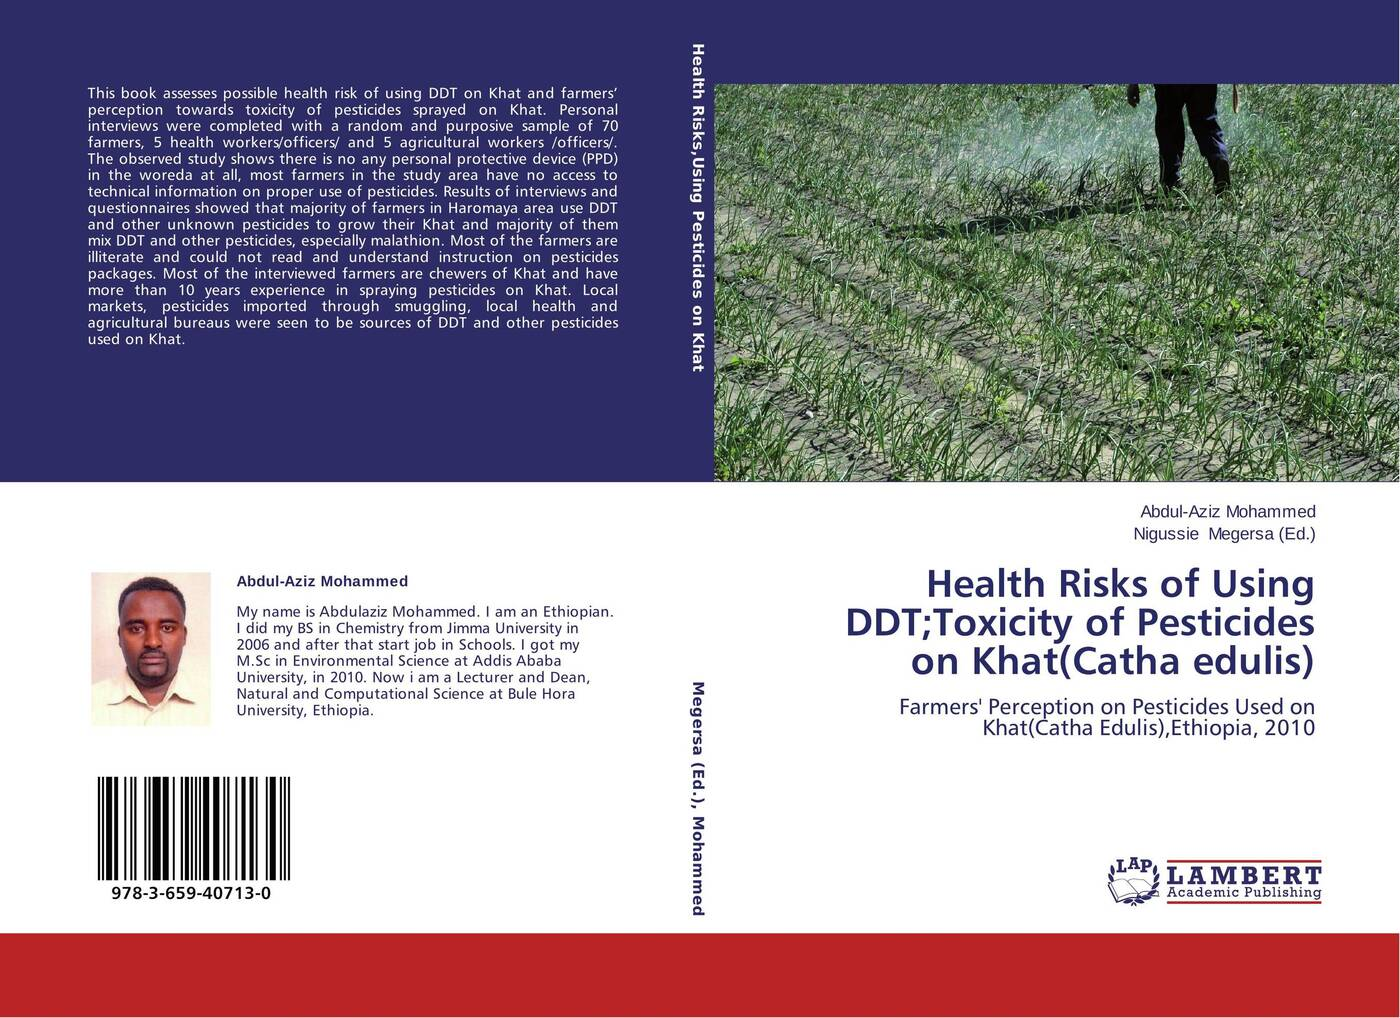 Abdul-Aziz Mohammed and Nigussie Megersa Health Risks of Using DDT;Toxicity of Pesticides on Khat(Catha edulis) other farmers paradise 100ml